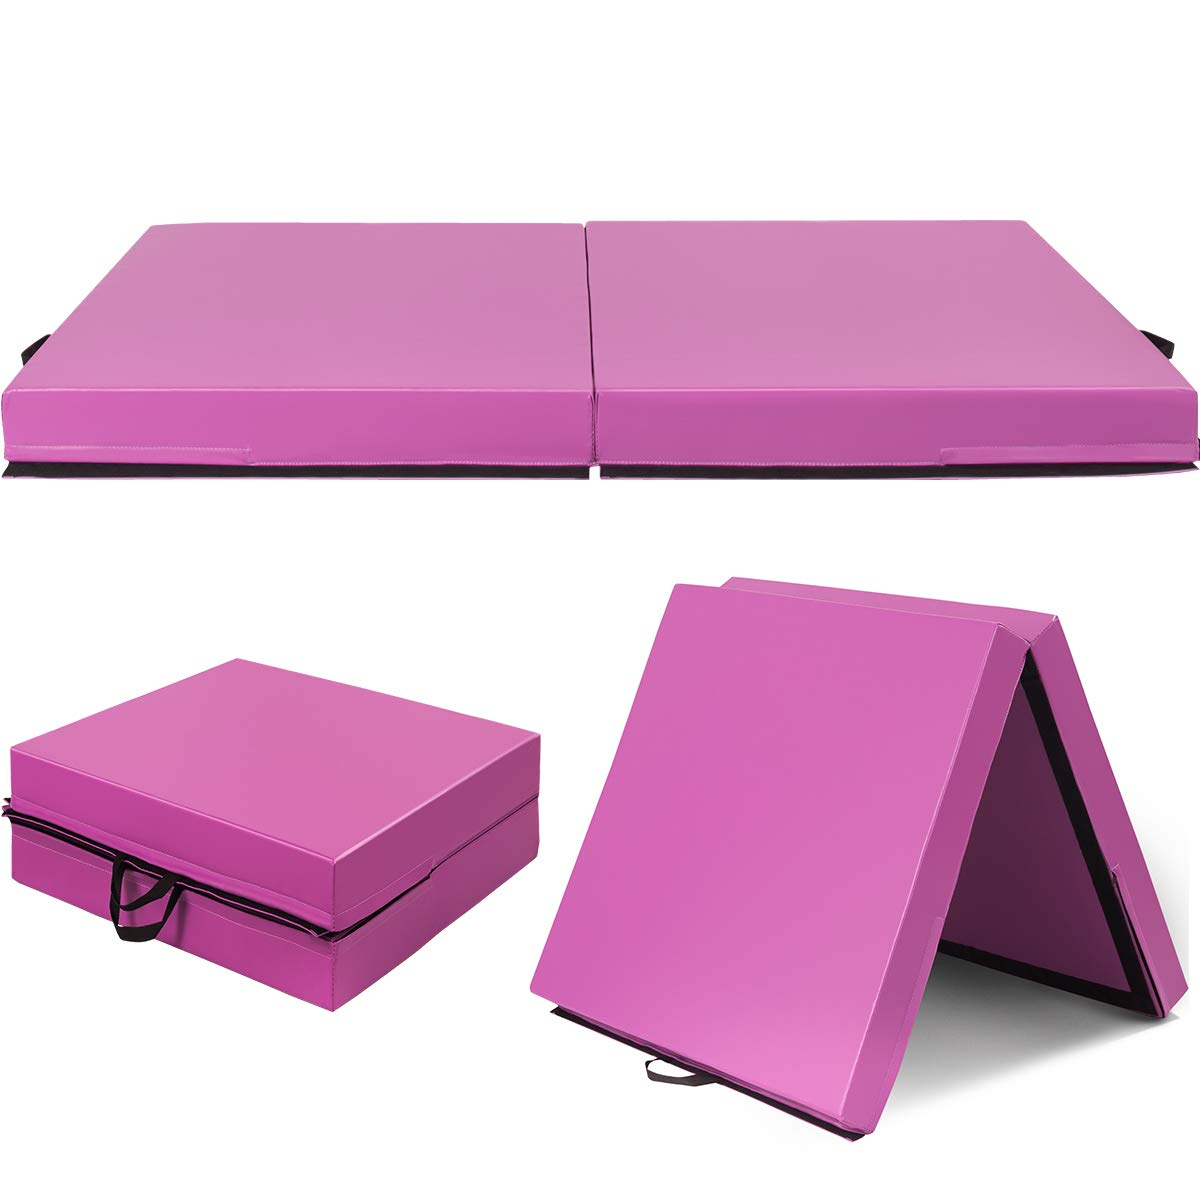 Giantex 6 x3.2 X4 Gymnastics Mat Thick Folding Panel for for Gym, Aerobics, Yoga, Martial Arts with Hook Loop Fasteners